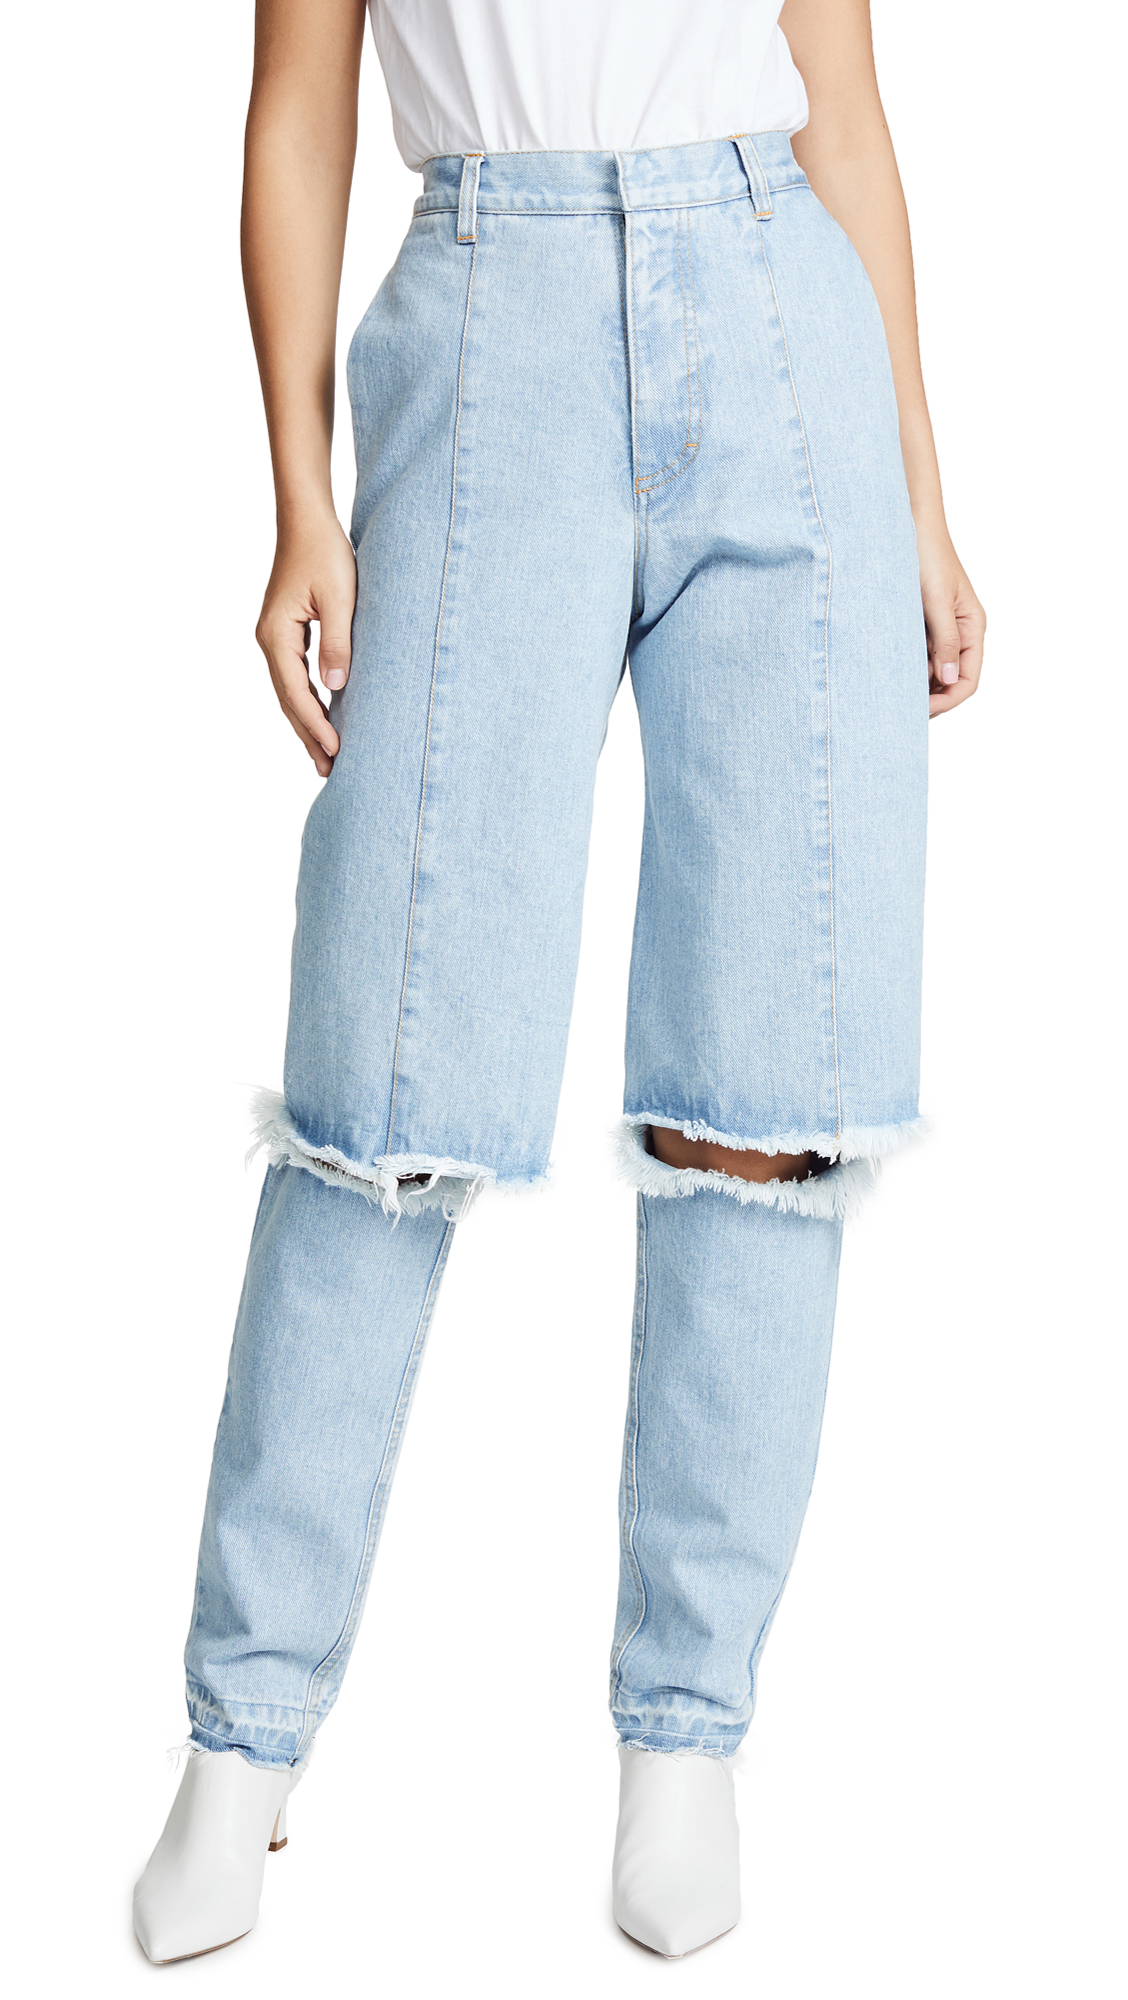 Ksenia Schnaider Slim Demi Jeans In Light Blue